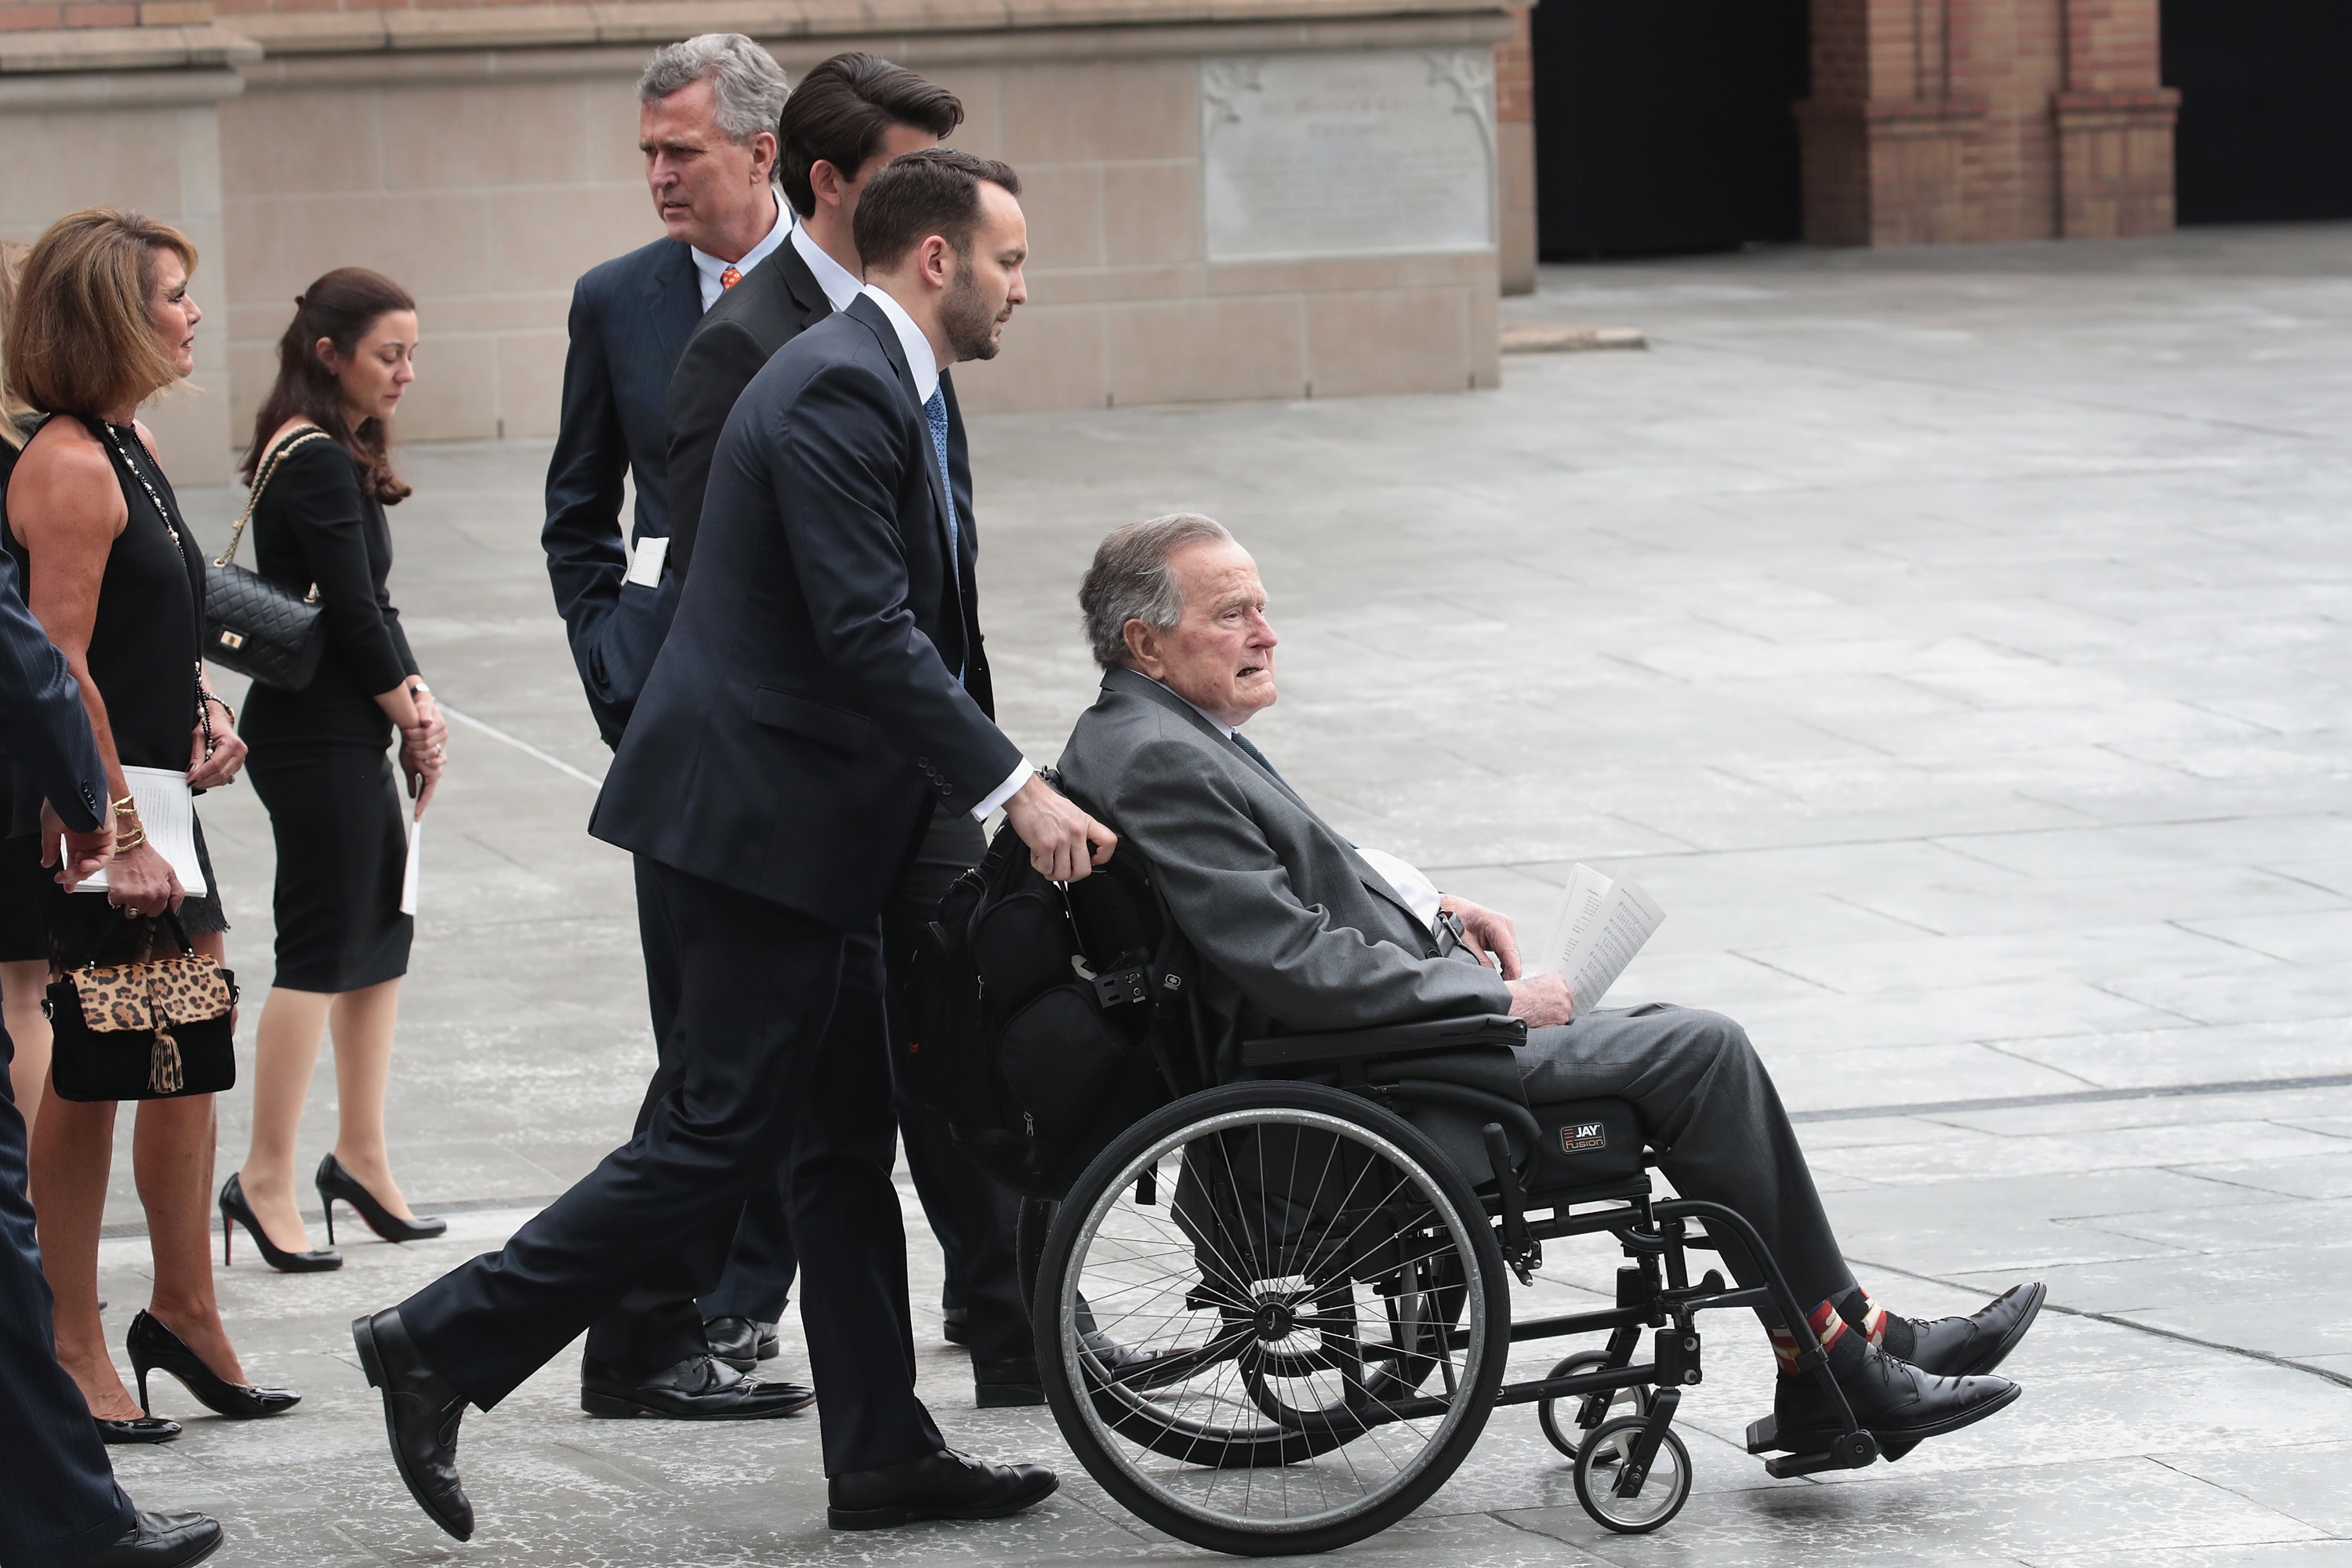 Former president George H.W. Bush leaves the funeral service of former first lady Barbara Bush at St. Martin's Episcopal Church on April 21, 2018 in Houston, Texas.